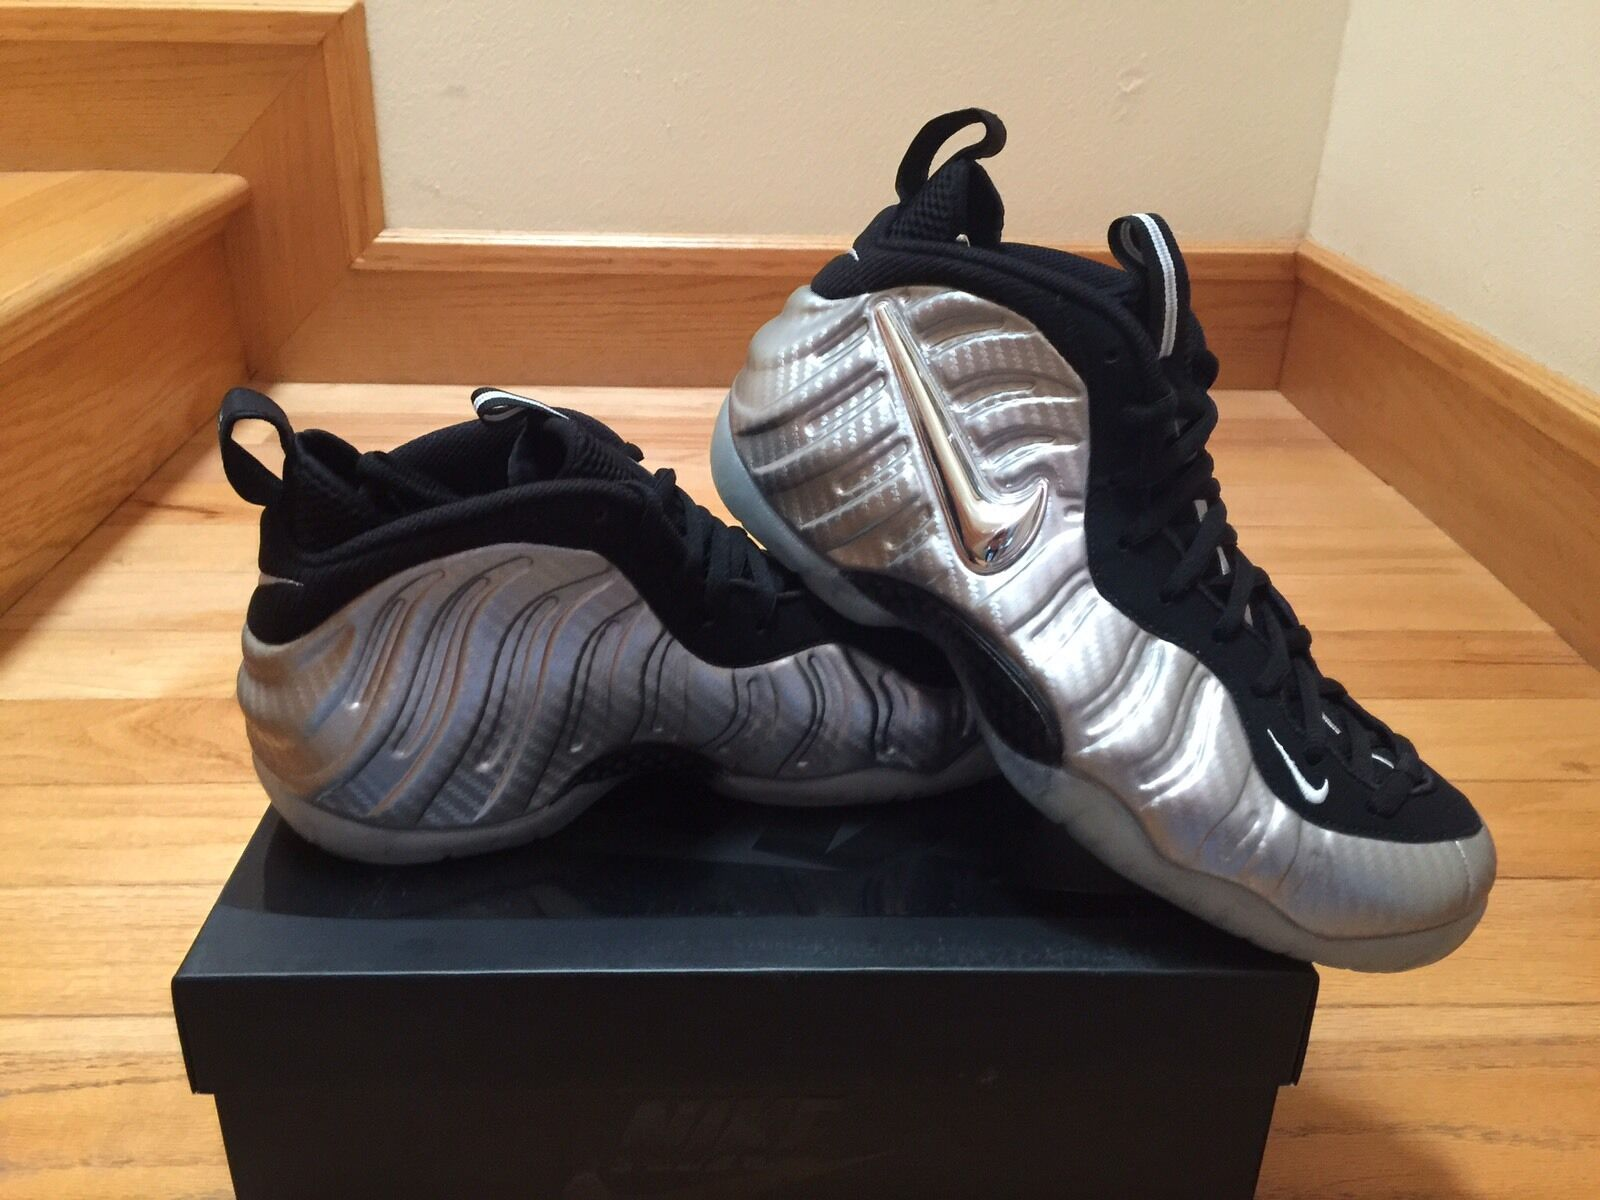 Nike Air Foamposite Pro Metallic Silver Surfer 616750-004 Size 9.5